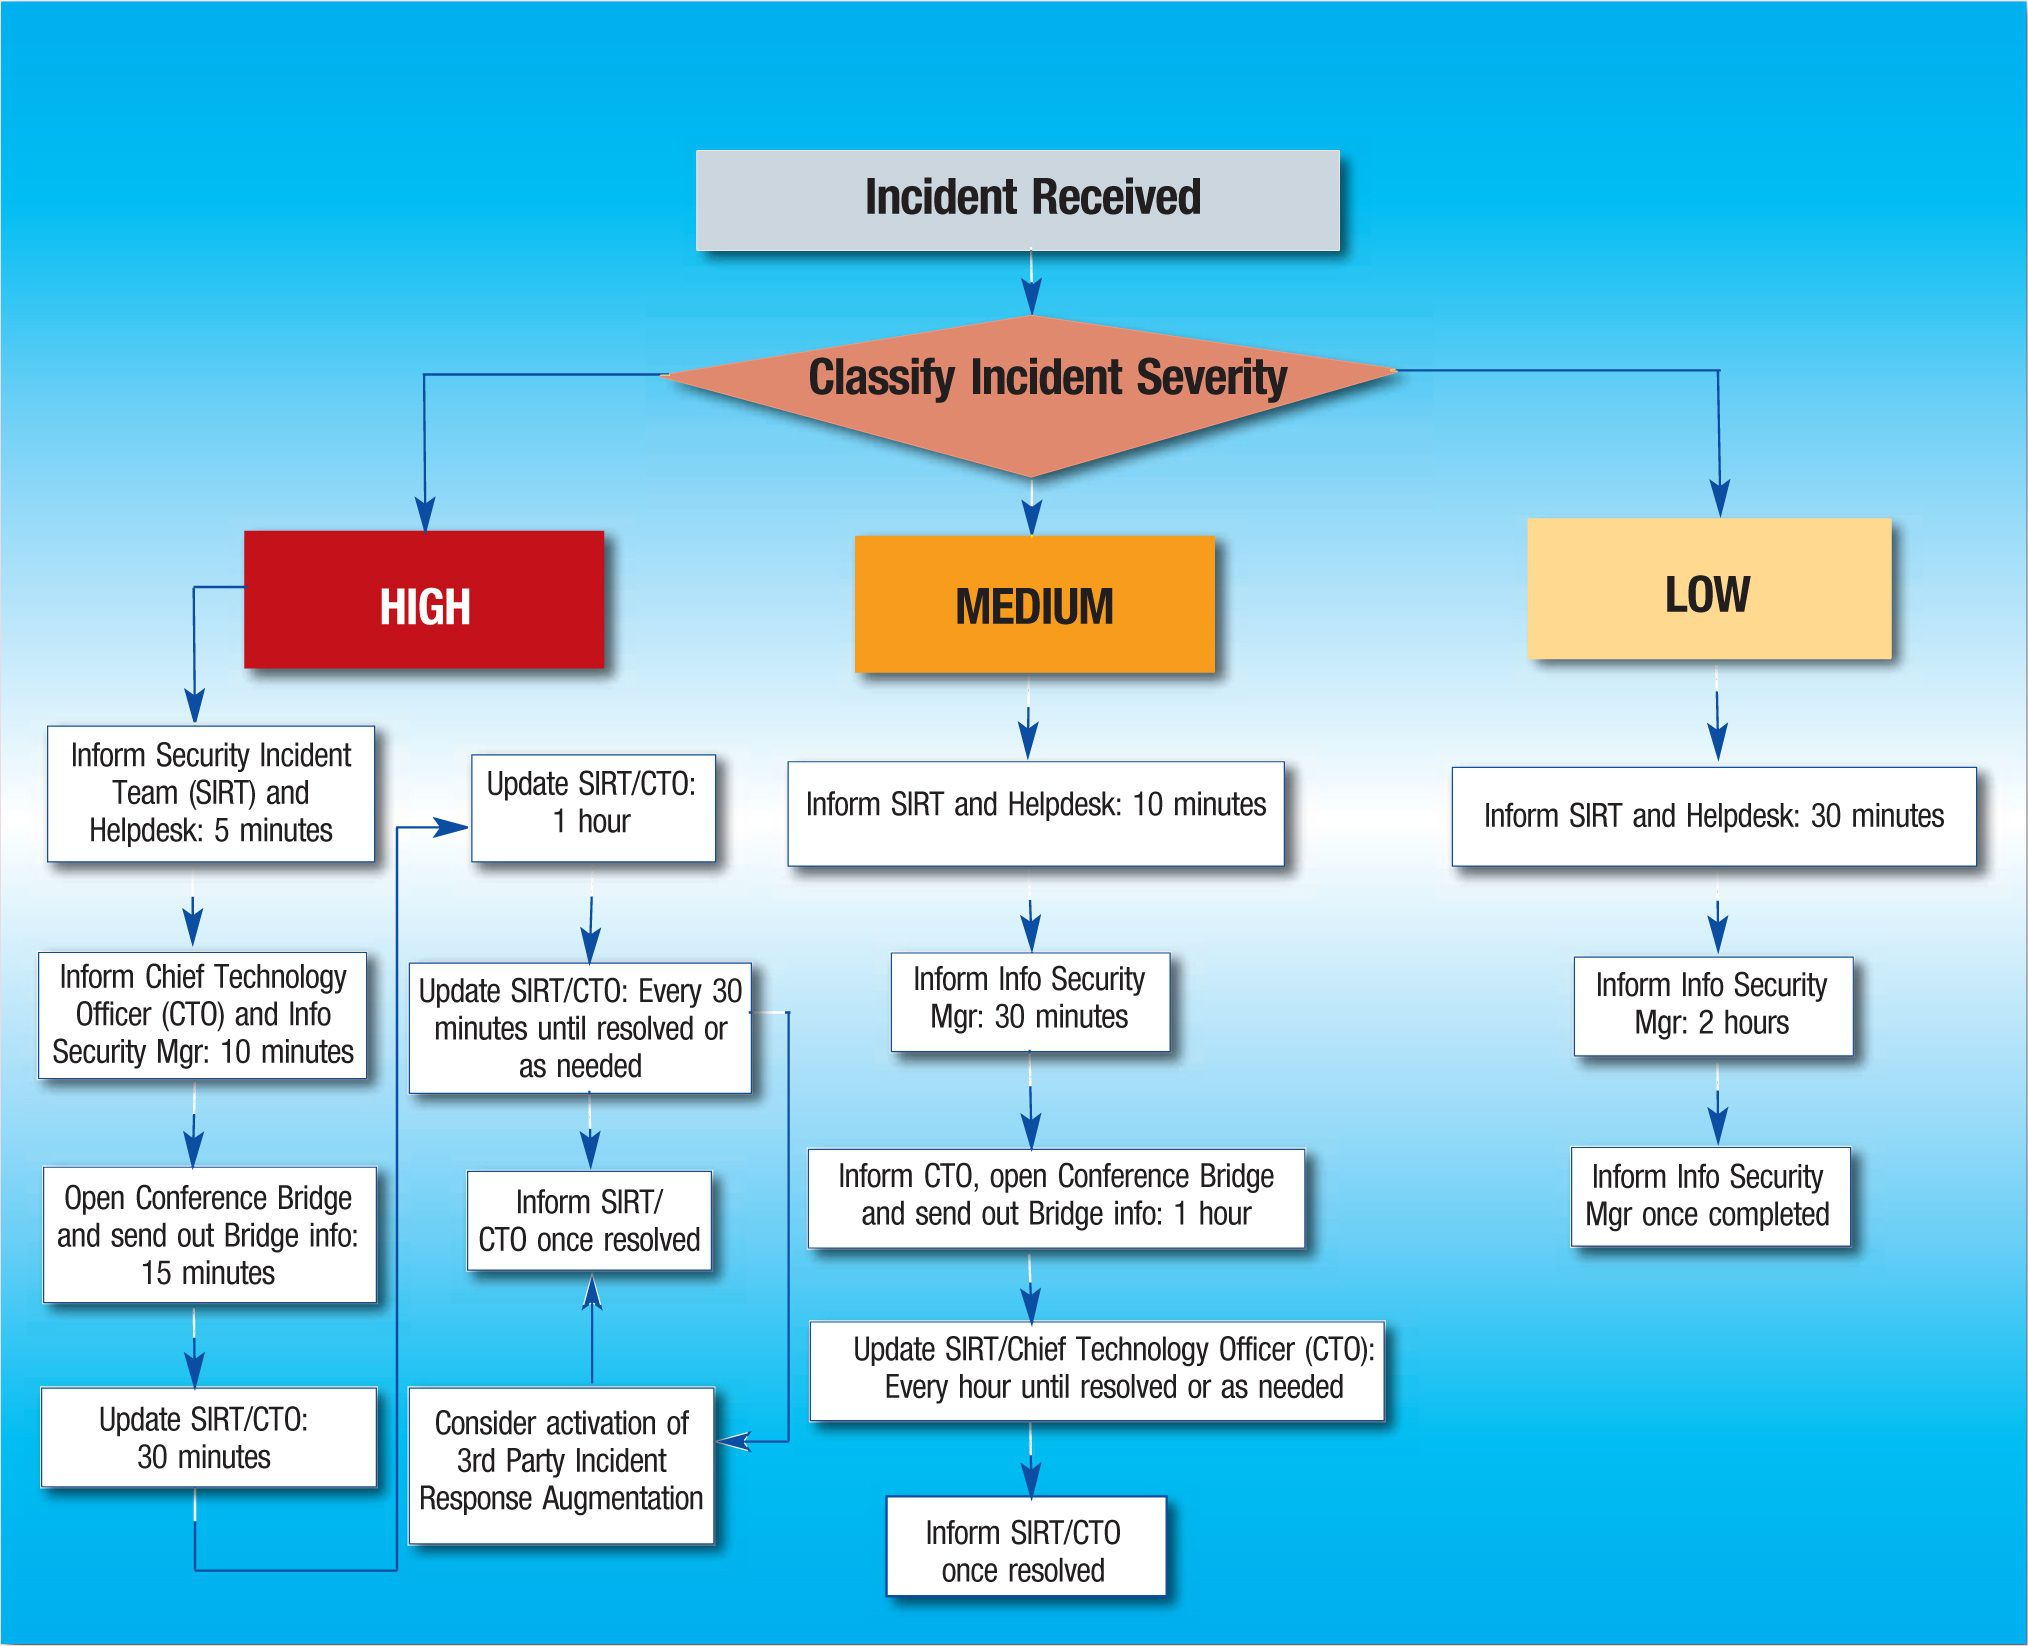 005 Formidable Security Incident Response Plan Template High Def  Hipaa Pci NistFull